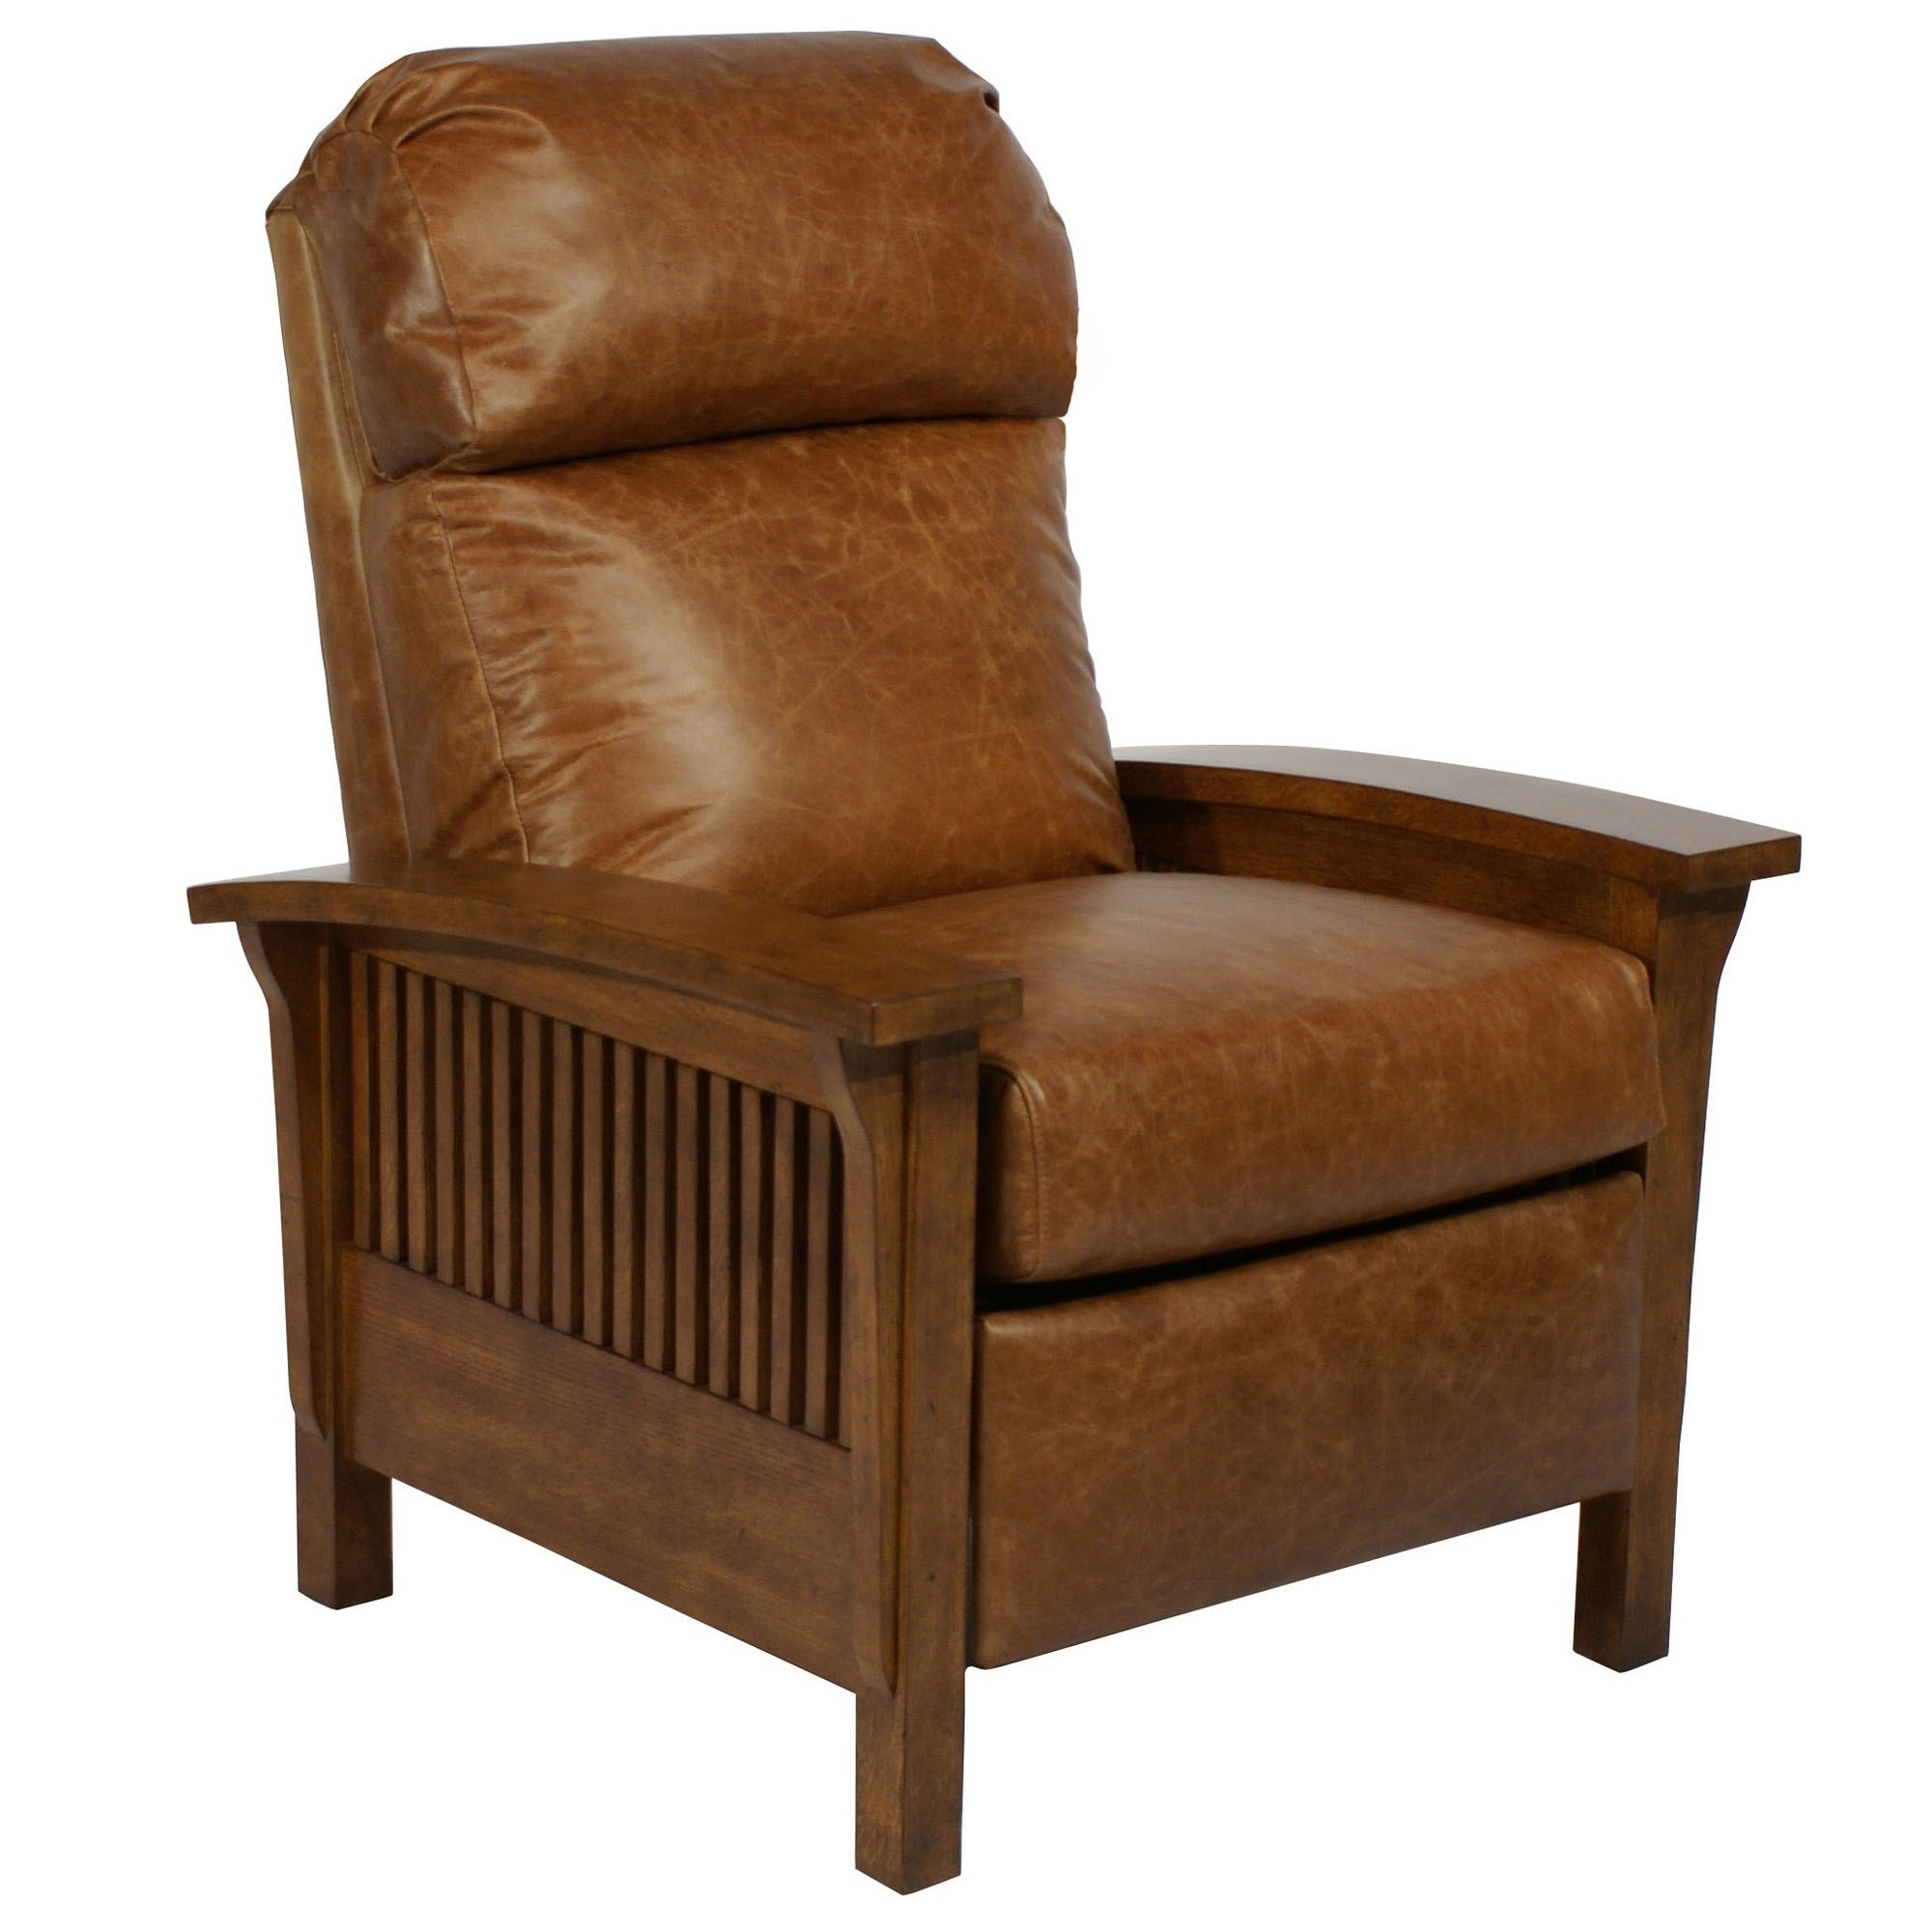 Newest Barcalounger Craftsman Ii Recliner Chair – Leather Recliner Chair Throughout Craftsman Arm Chairs (#16 of 20)